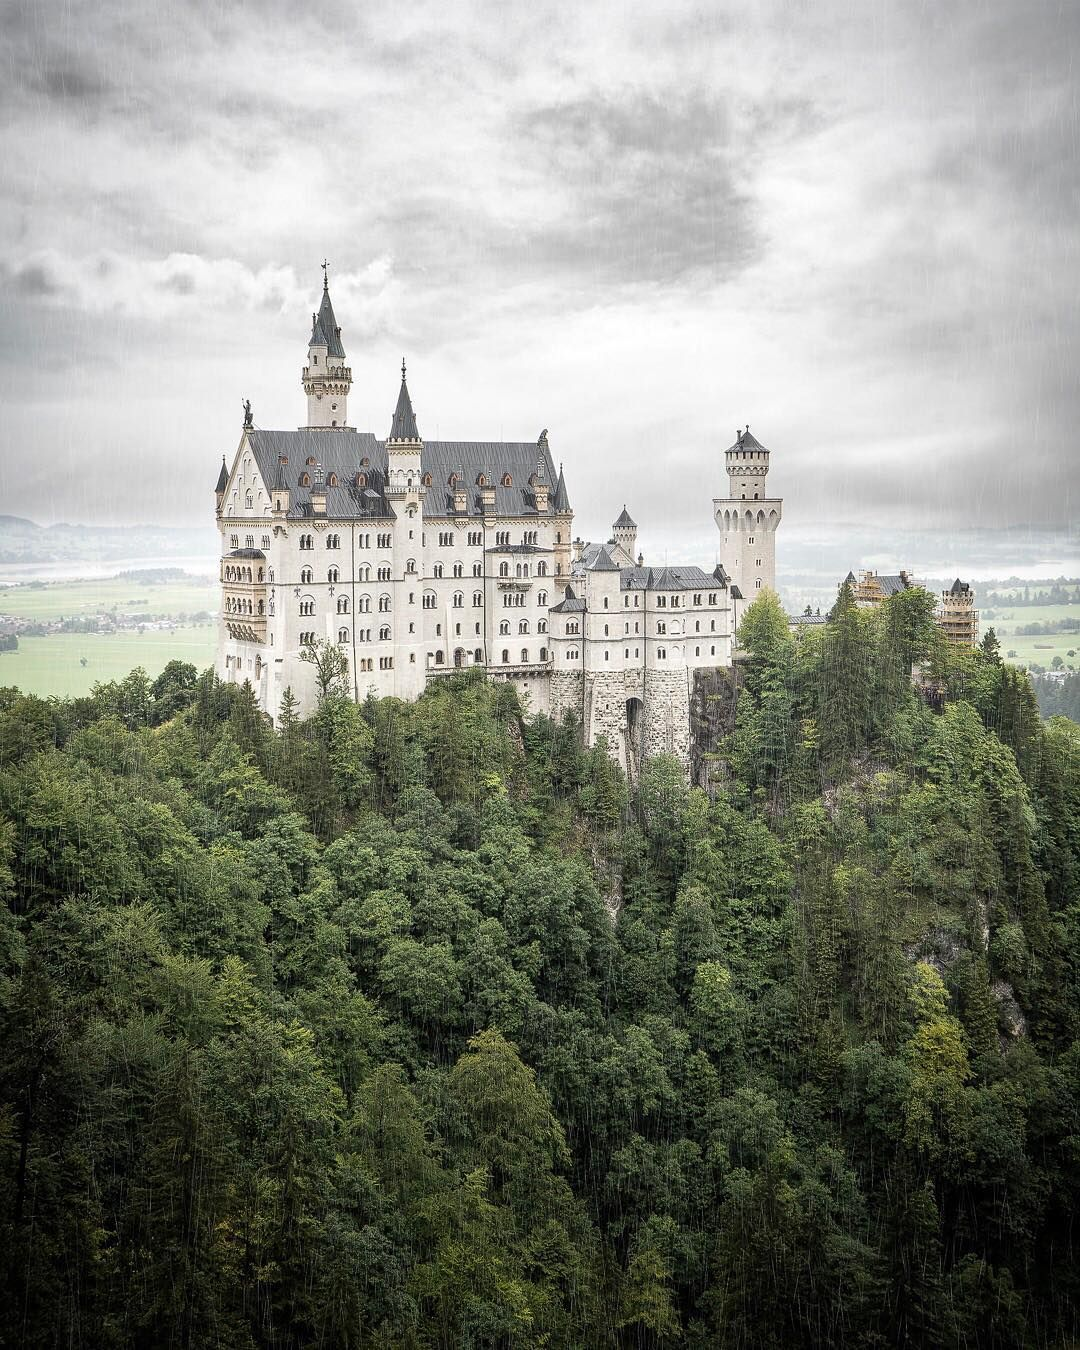 Schloss Neuschwanstein Castles Manors In 2019 Germany Castles Beautiful Castles Castle